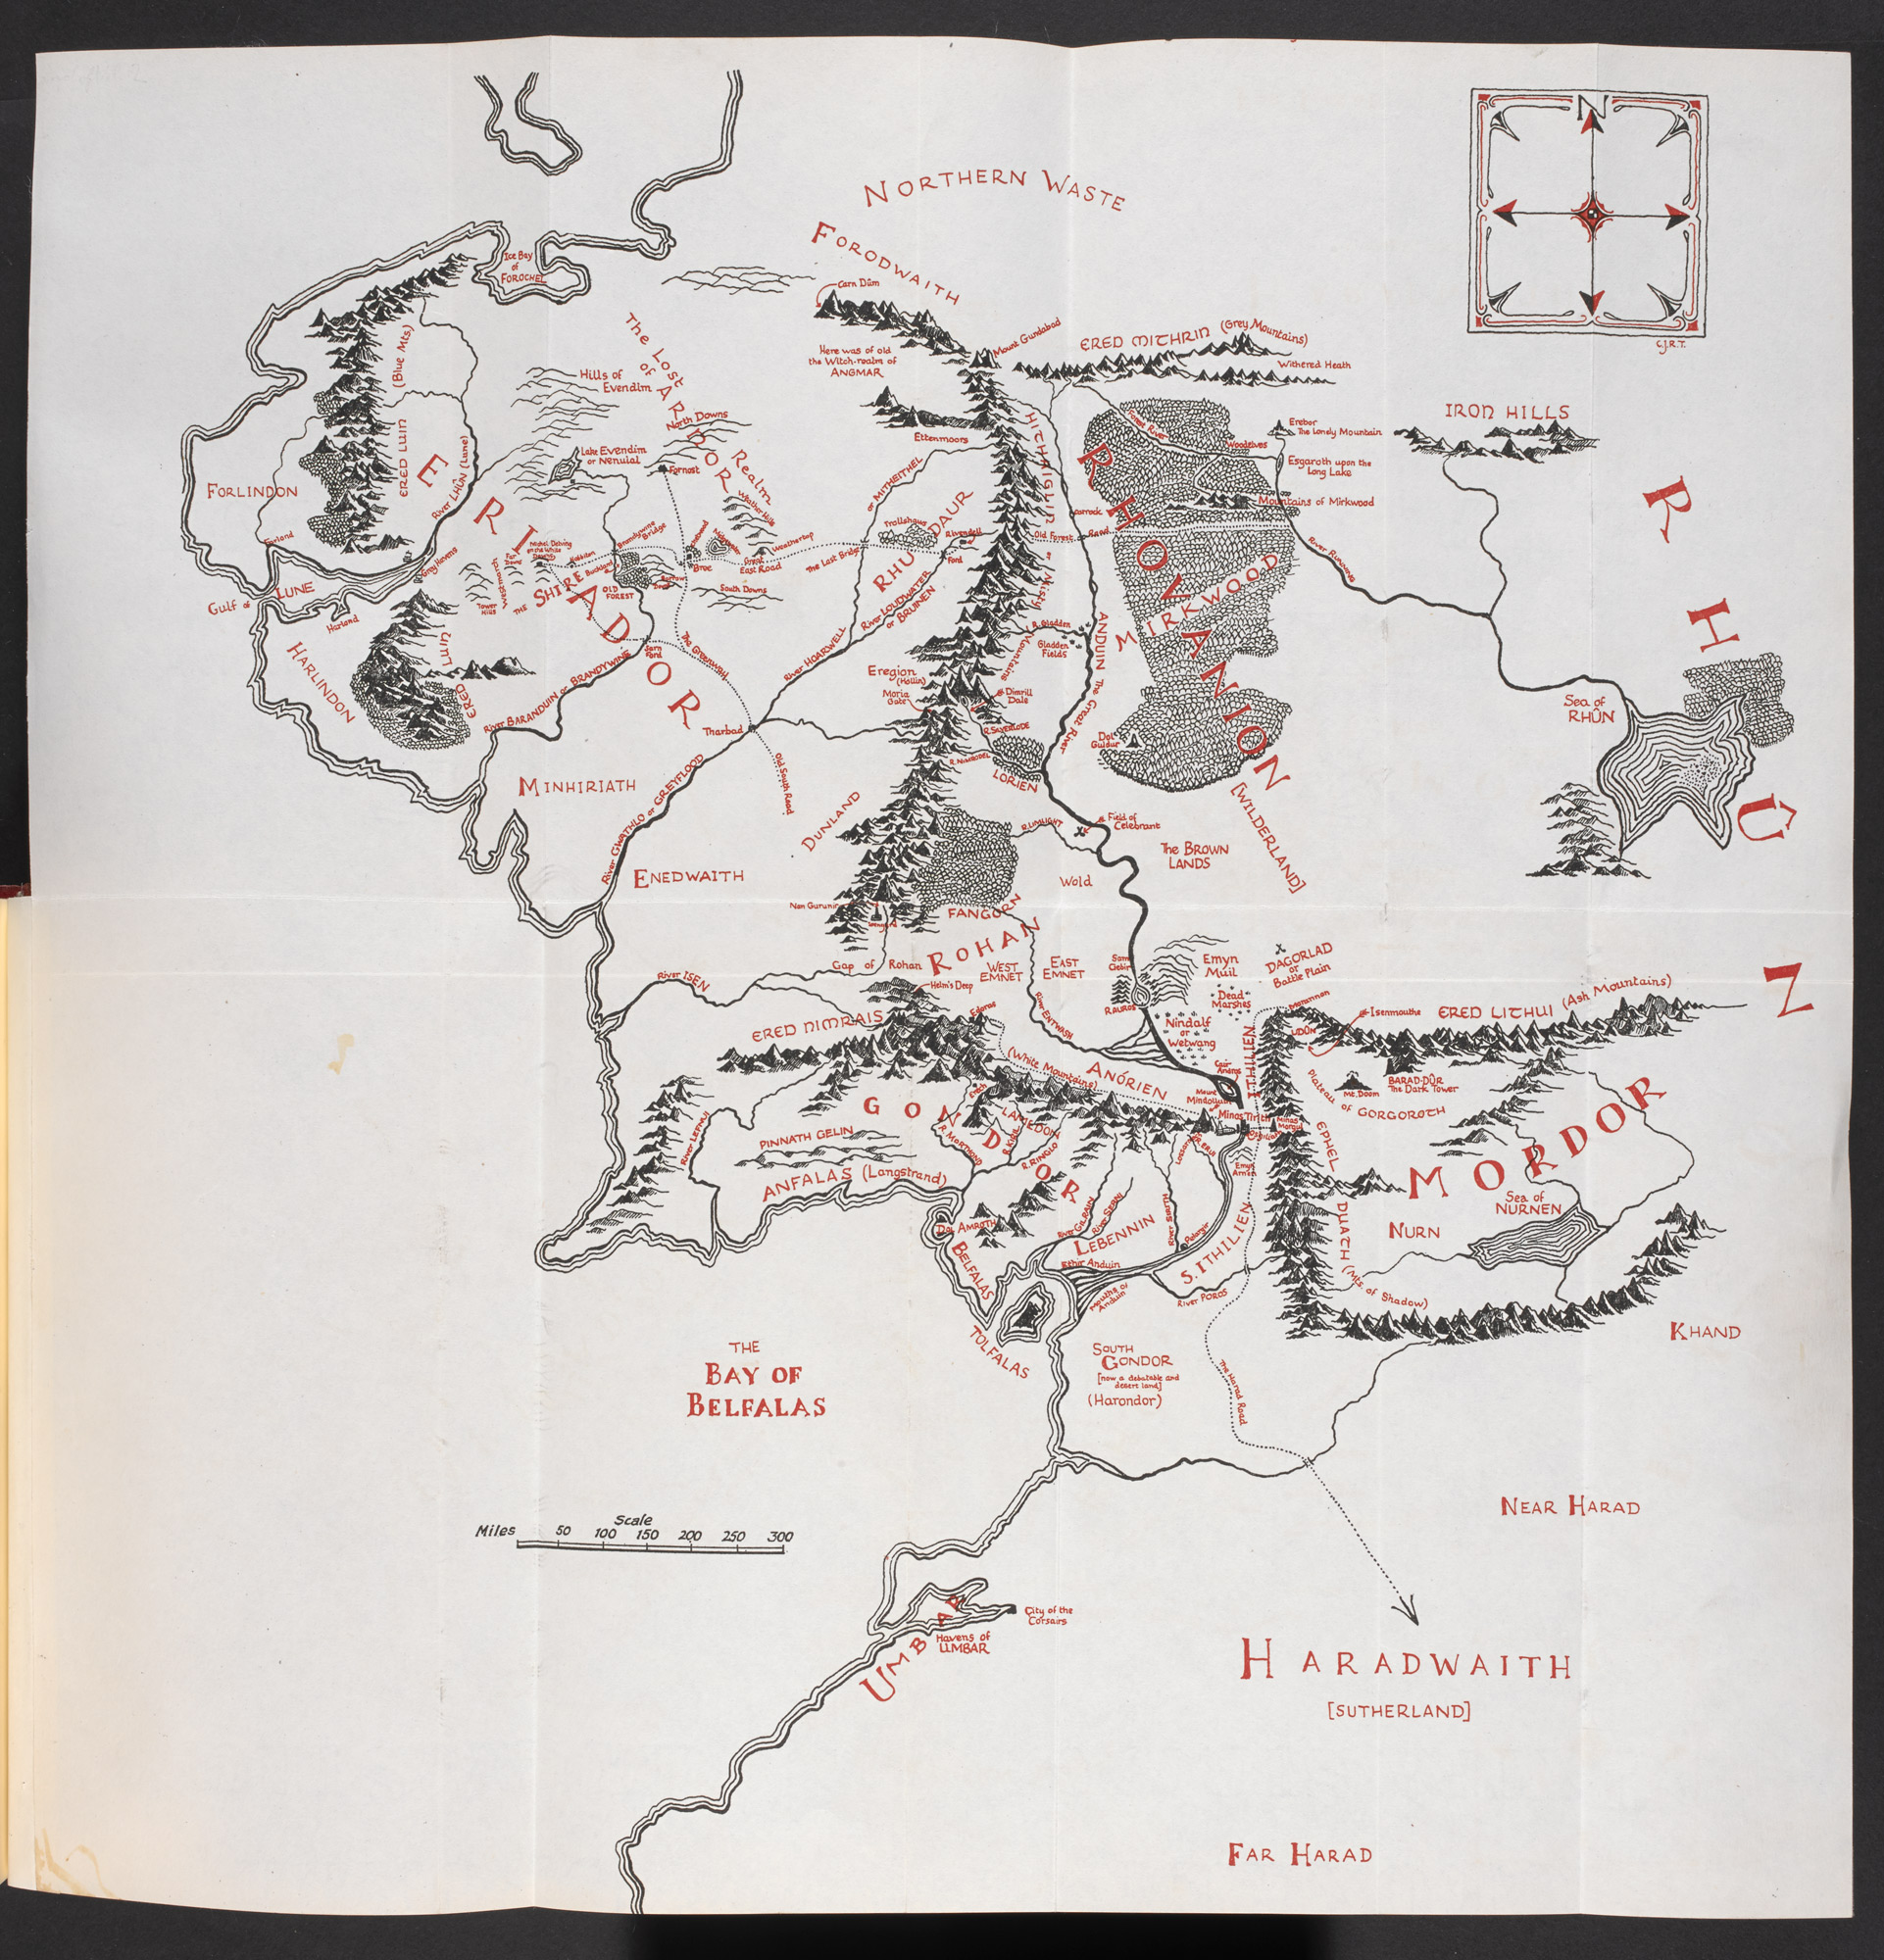 Map of the Middle Earth - The British Liry Map Middle Earth on mirkwood map, frodo baggins, rohan map, the lord of the rings, bilbo's map, hobbit map, the hobbit, j. r. r. tolkien, the shire map, rivendell map, tolkien map, dol guldur map, mordor map, beleriand map, silmarillion map, moria map, wheel of time map, gundabad map, gondor map, minas tirith map, eriador map, lord of the rings map, star trek map,